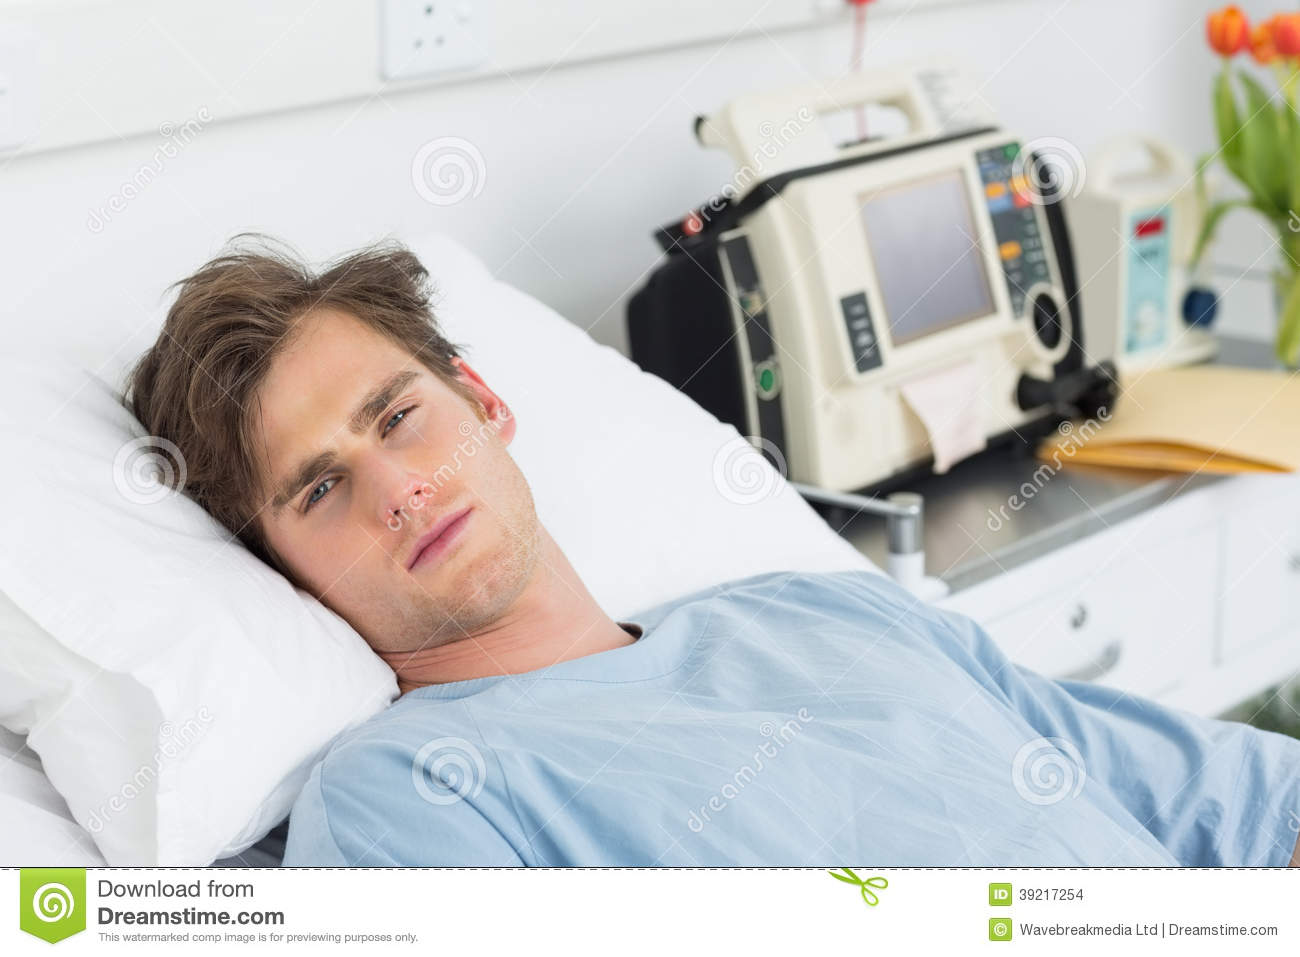 Patient In Hospital Bed : Patient Relaxing In Hospital Bed Stock Photo - Image: 39217254